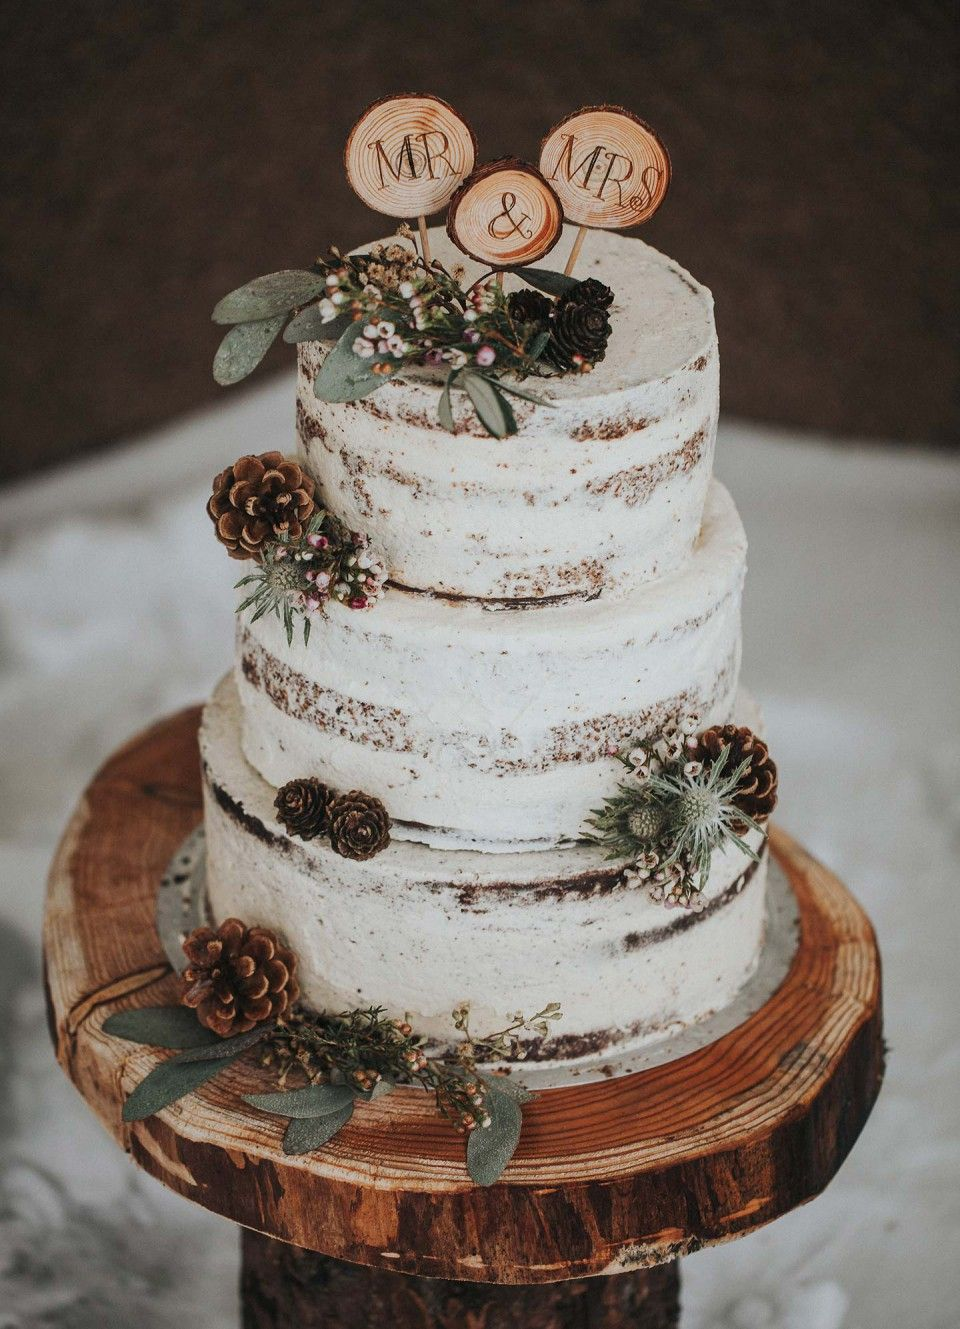 Wooden Wedding – Winterhochzeitsidee im Wald A-STONE WEDDING & LIFESTYLE PHOTOGRAPHY http://www.hochzeitswahn.de/inspirationsideen/wooden-wedding-winterhochzeitsidee-im-wald/ #wedding #rustic #winter